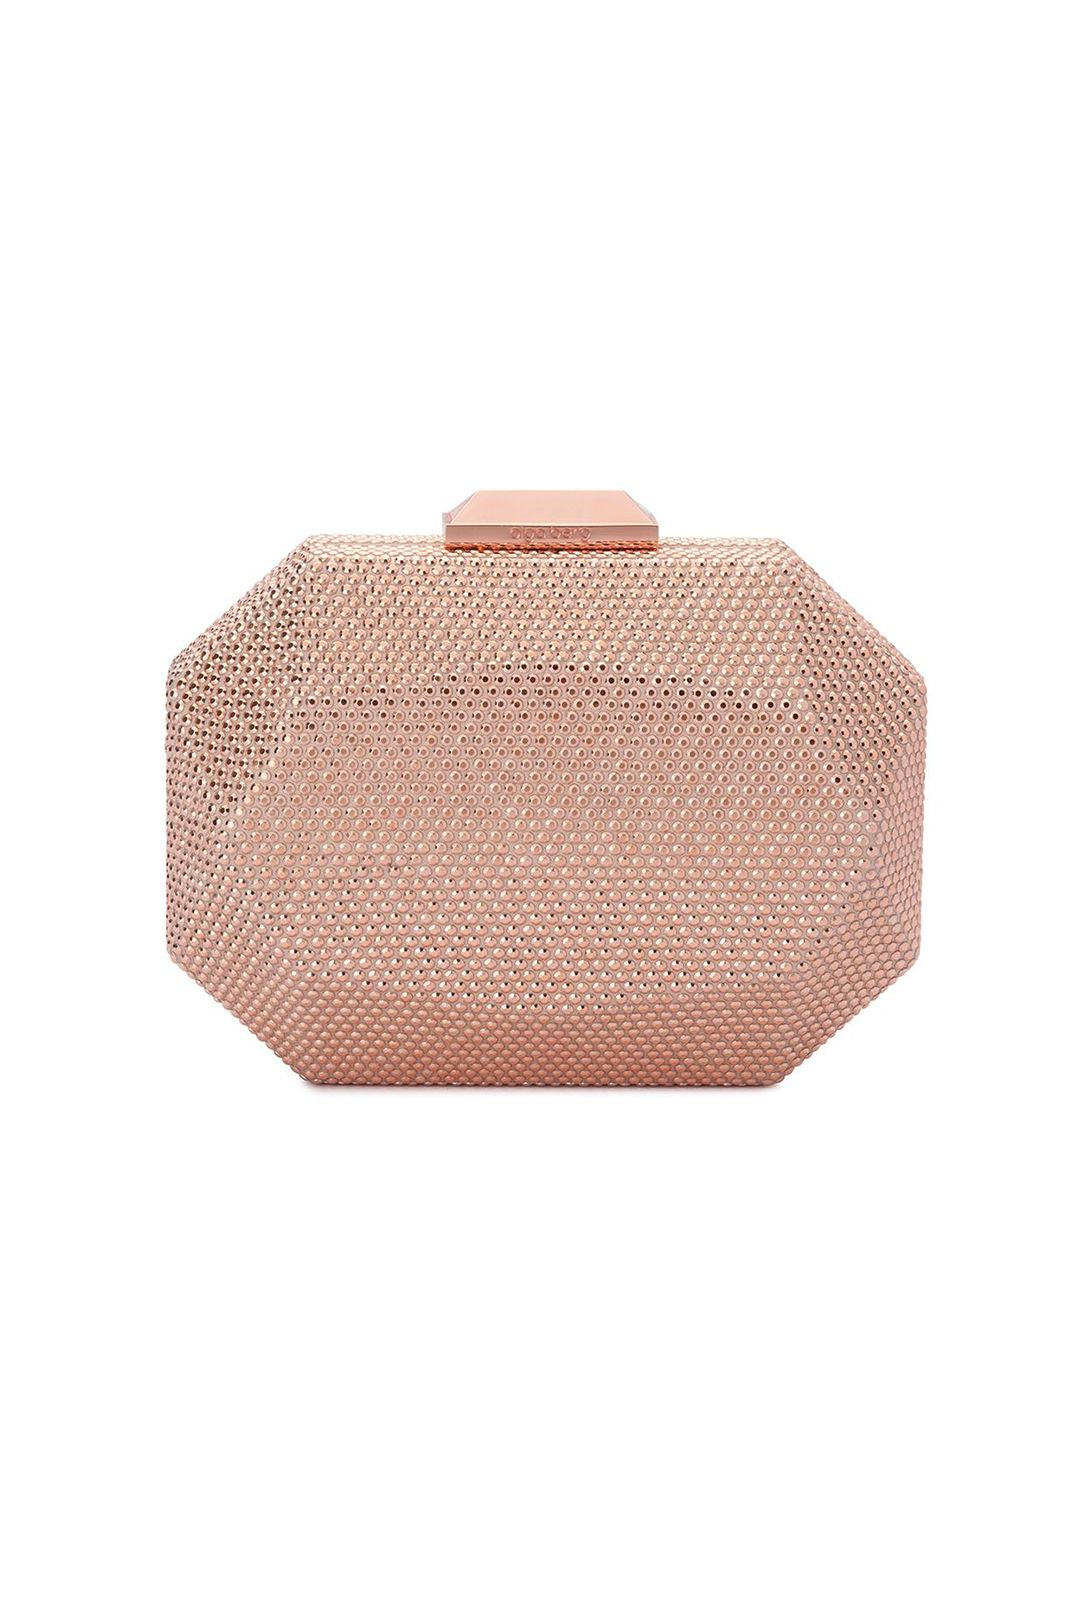 Olga Berg - Telesa Crystal Facet Clutch - Rose Gold - Product